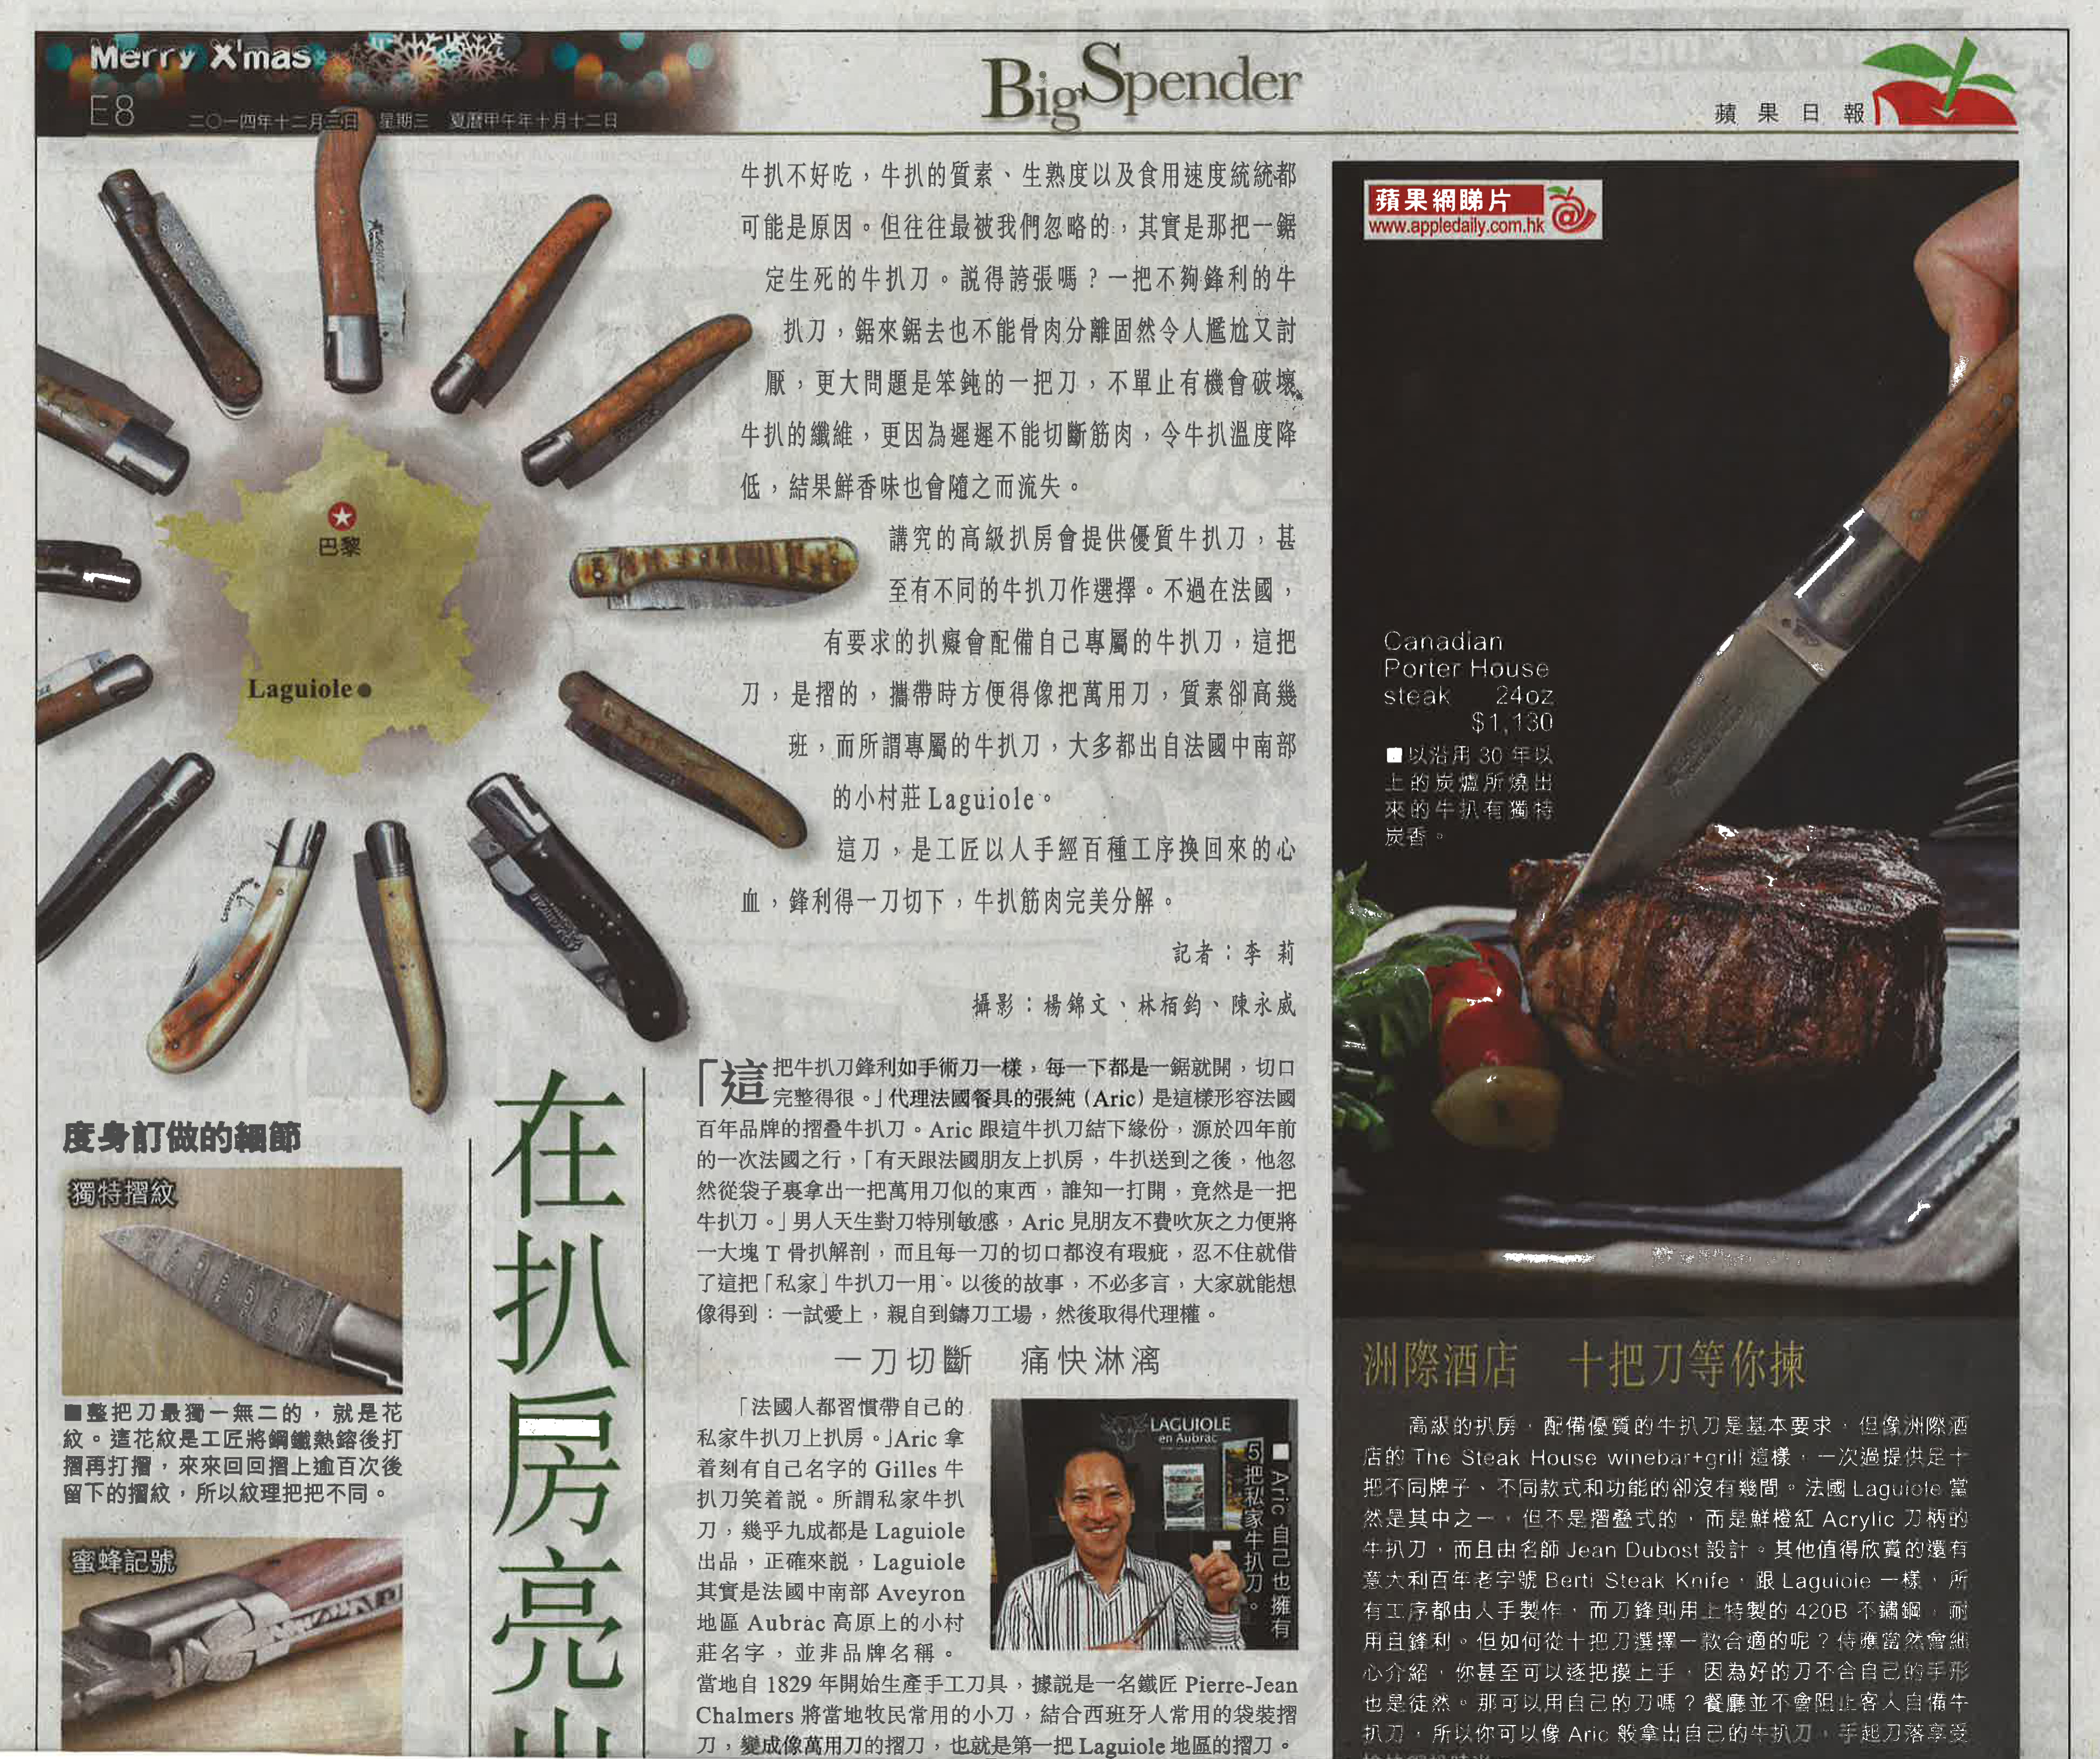 Couteaux laguiole made in France Apple Daily Honk Hong